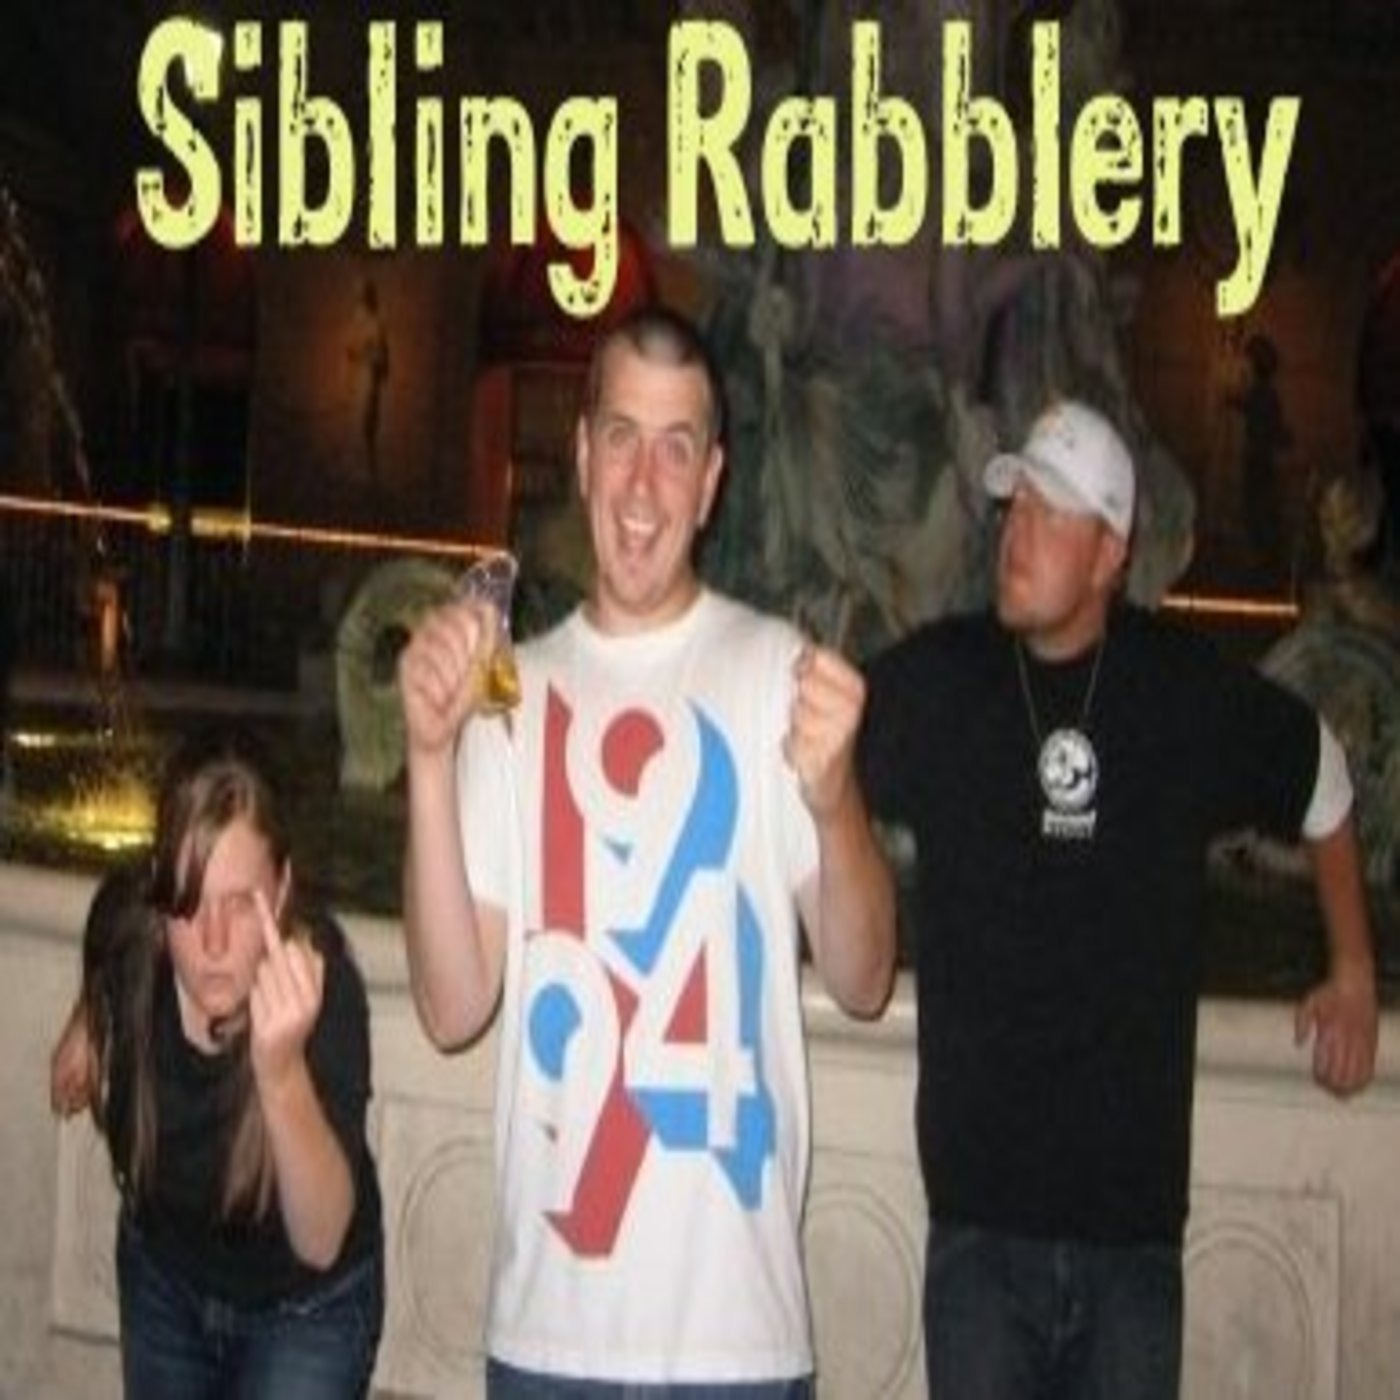 Sibling Rabblery